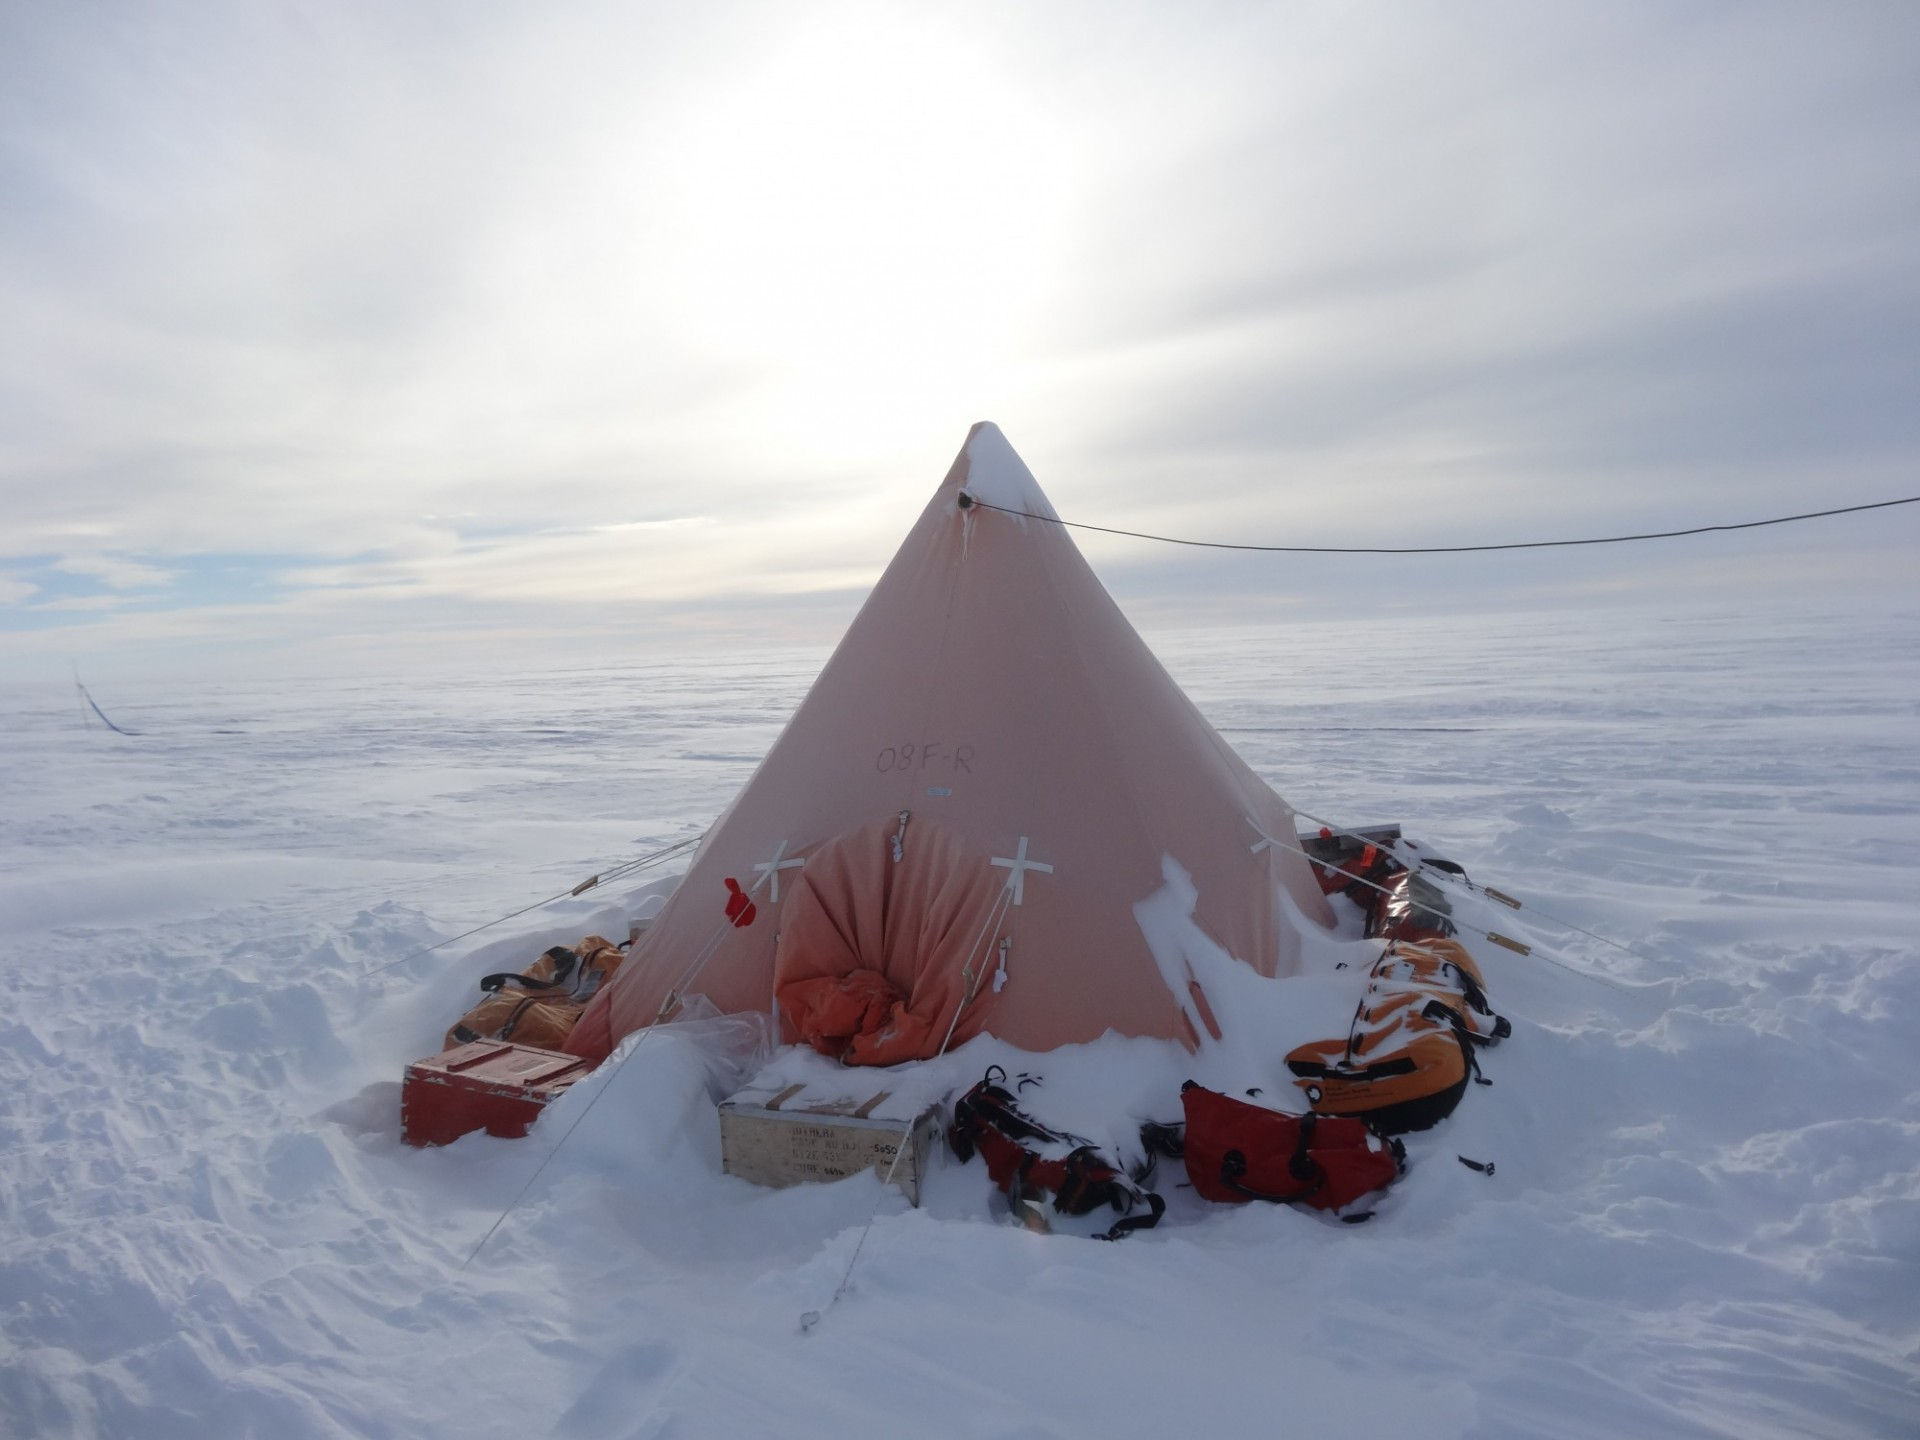 Scott Tent in Weddell Sea Sector of West Antarctica by Jonathan Kingslake